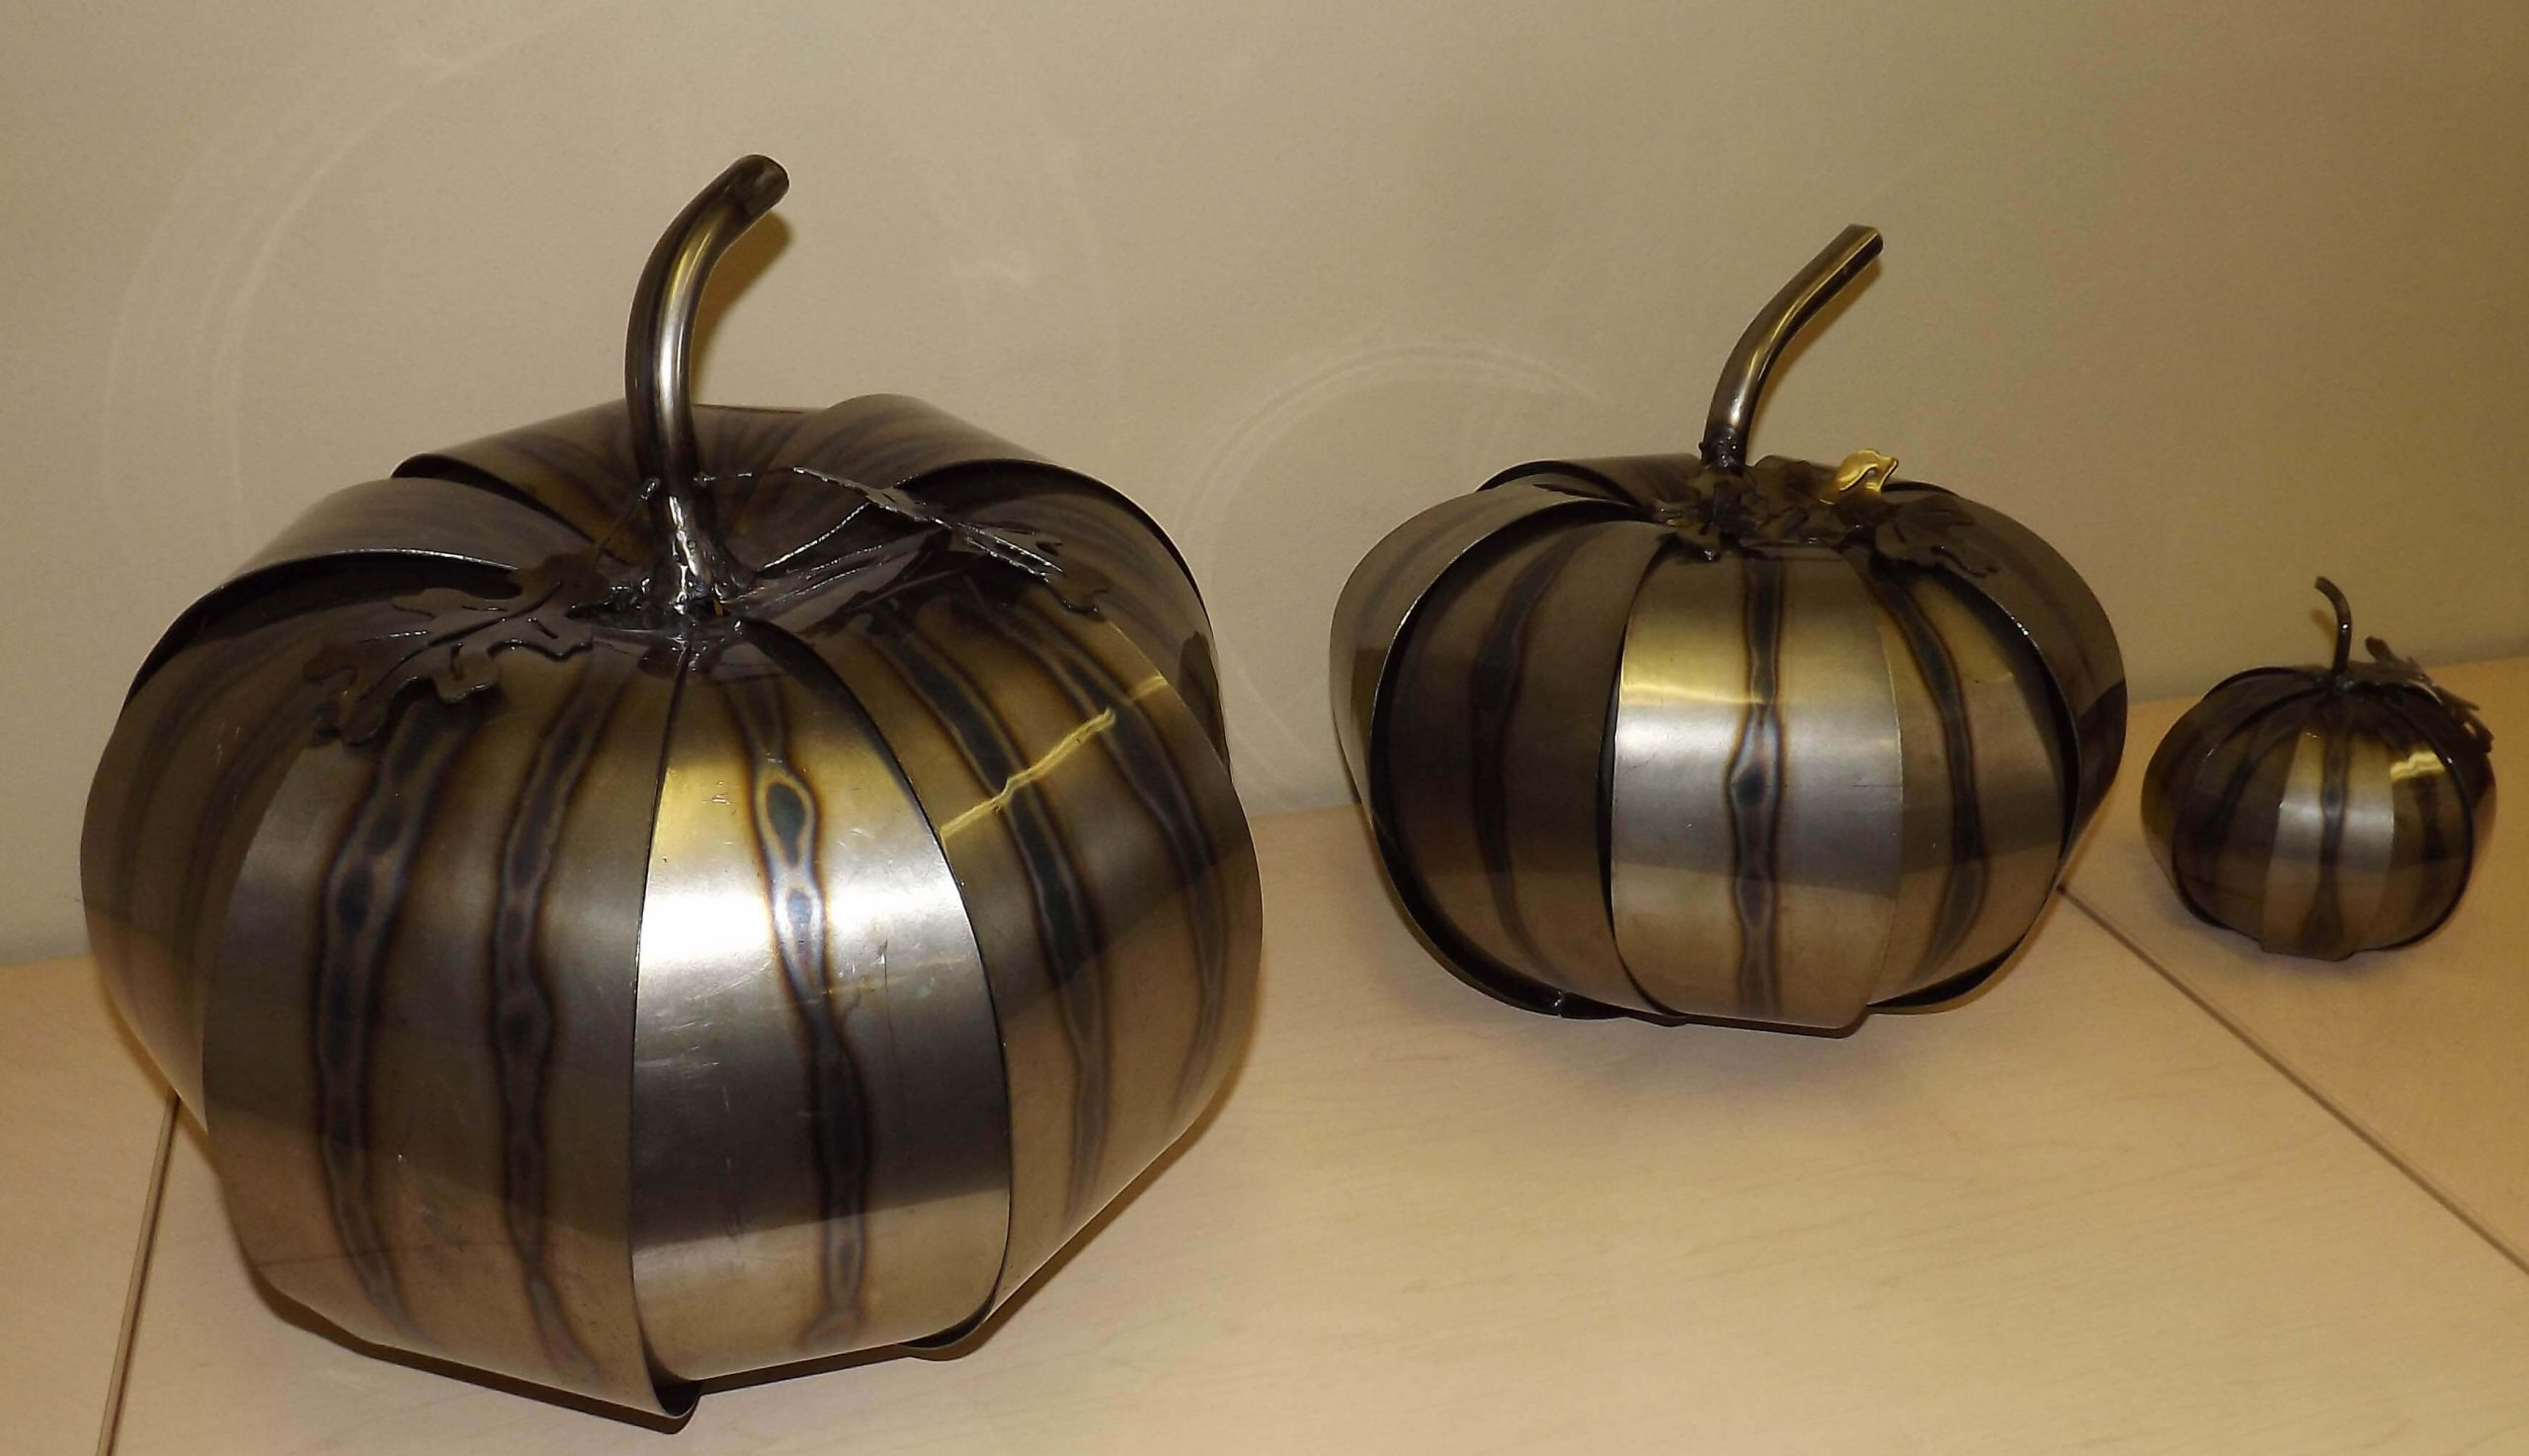 Metal Art - 3D Pumpkins